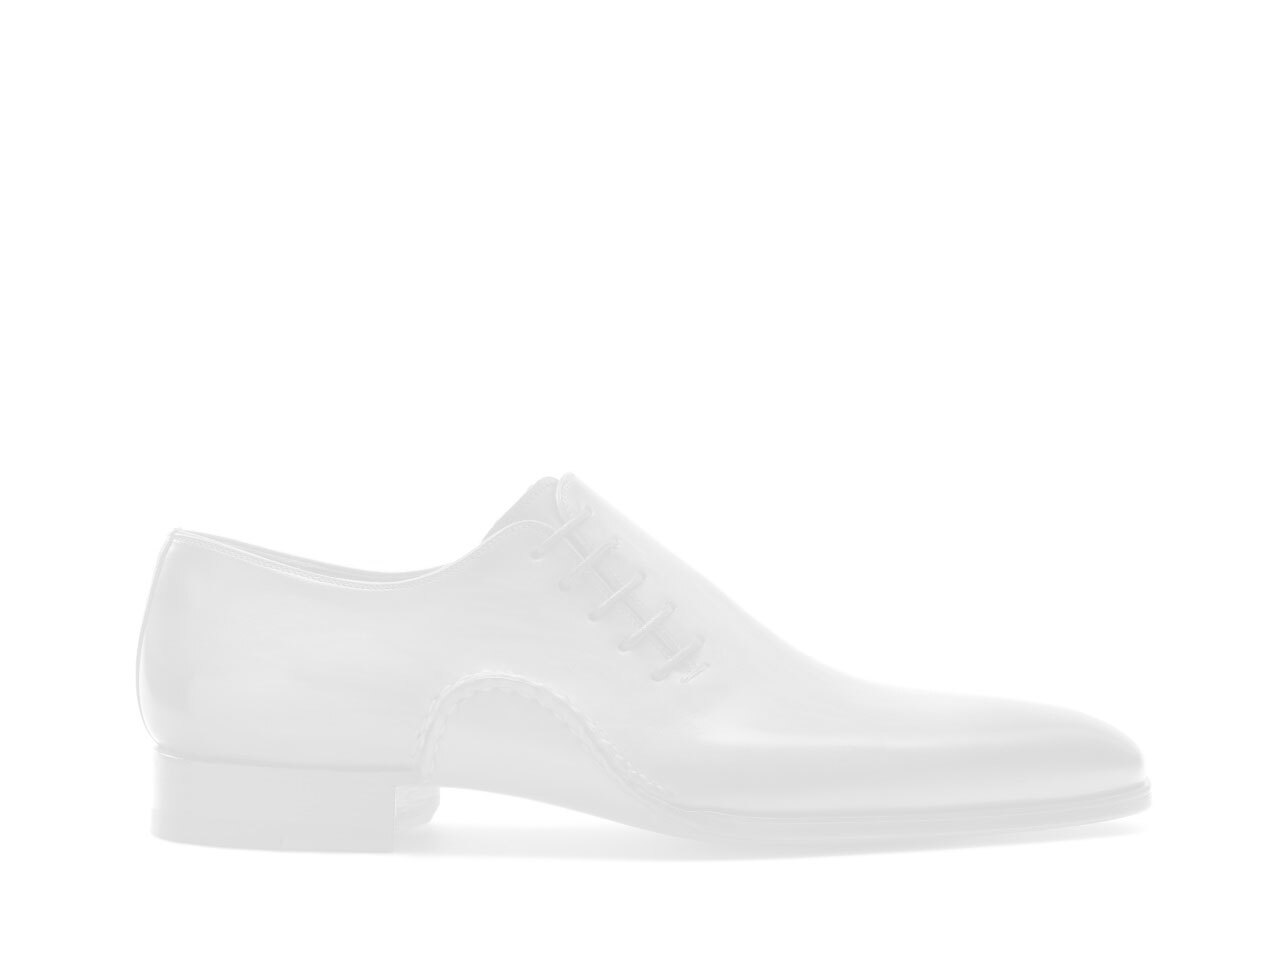 Sole of the Magnanni Echo Lo White and Navy Men's Sneakers